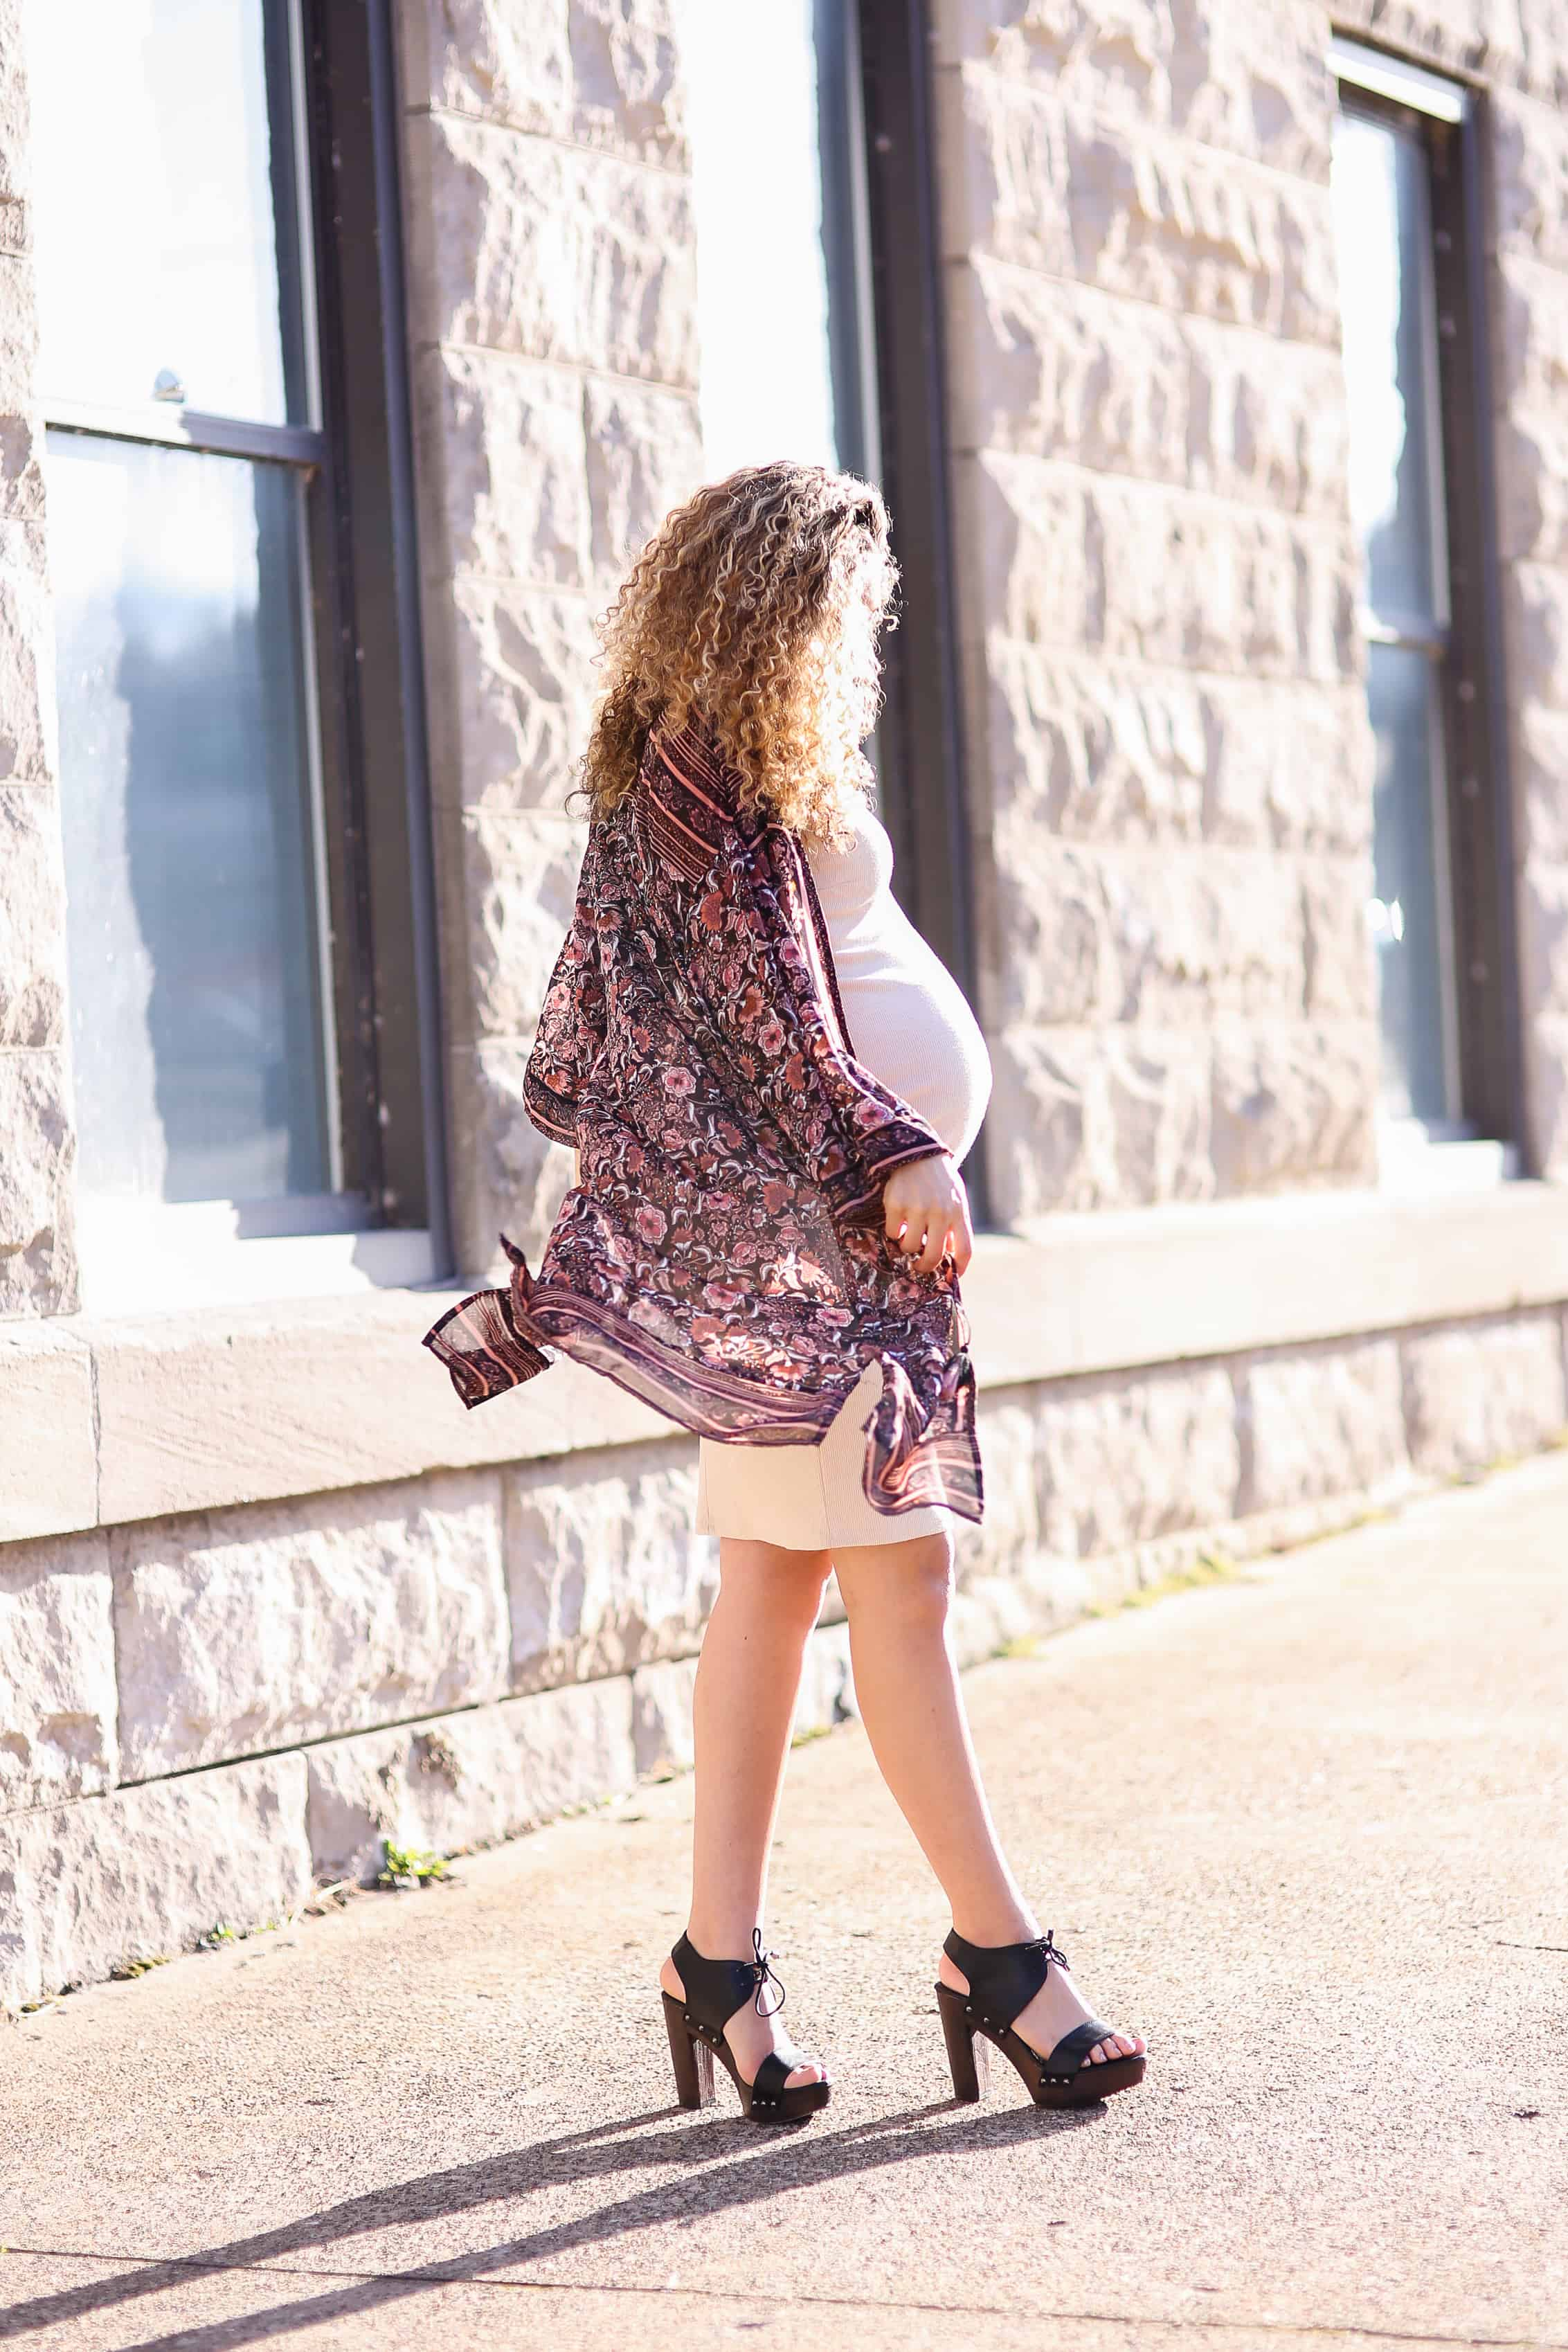 Easy Outfit Formula to Master Boho Chic